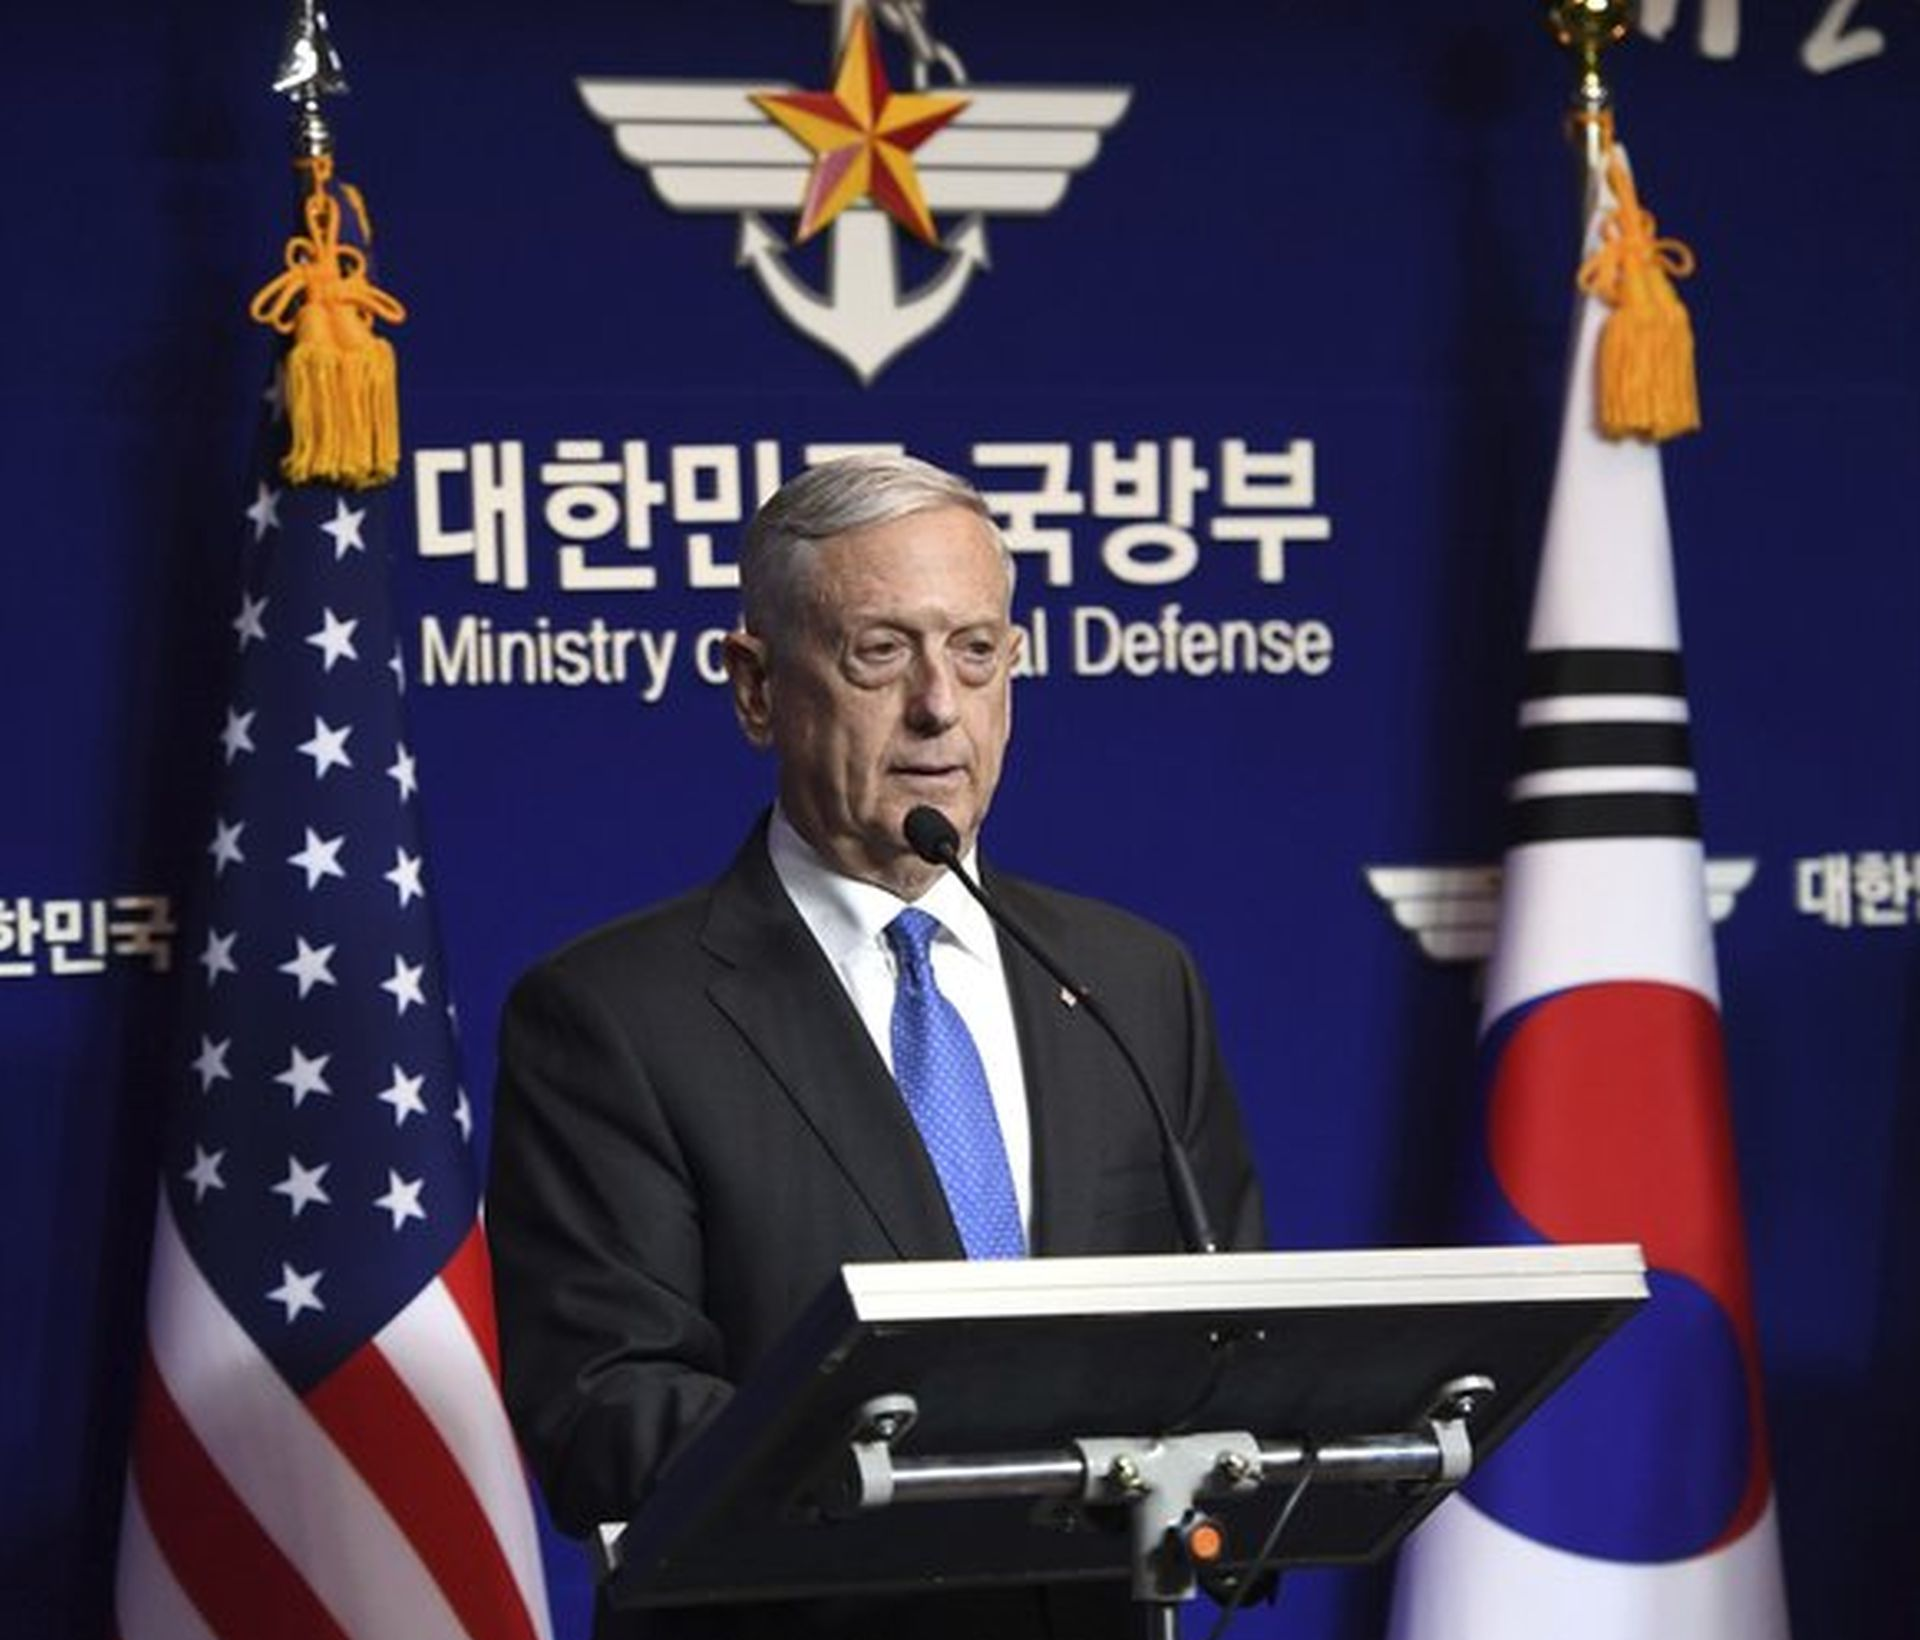 U.S. Defense Secretary James Mattis speaks during a joint press conference with South Korea Defense Minister Son Young-moo in Seoul, South Korea on Saturday. AP NEWSWIRE